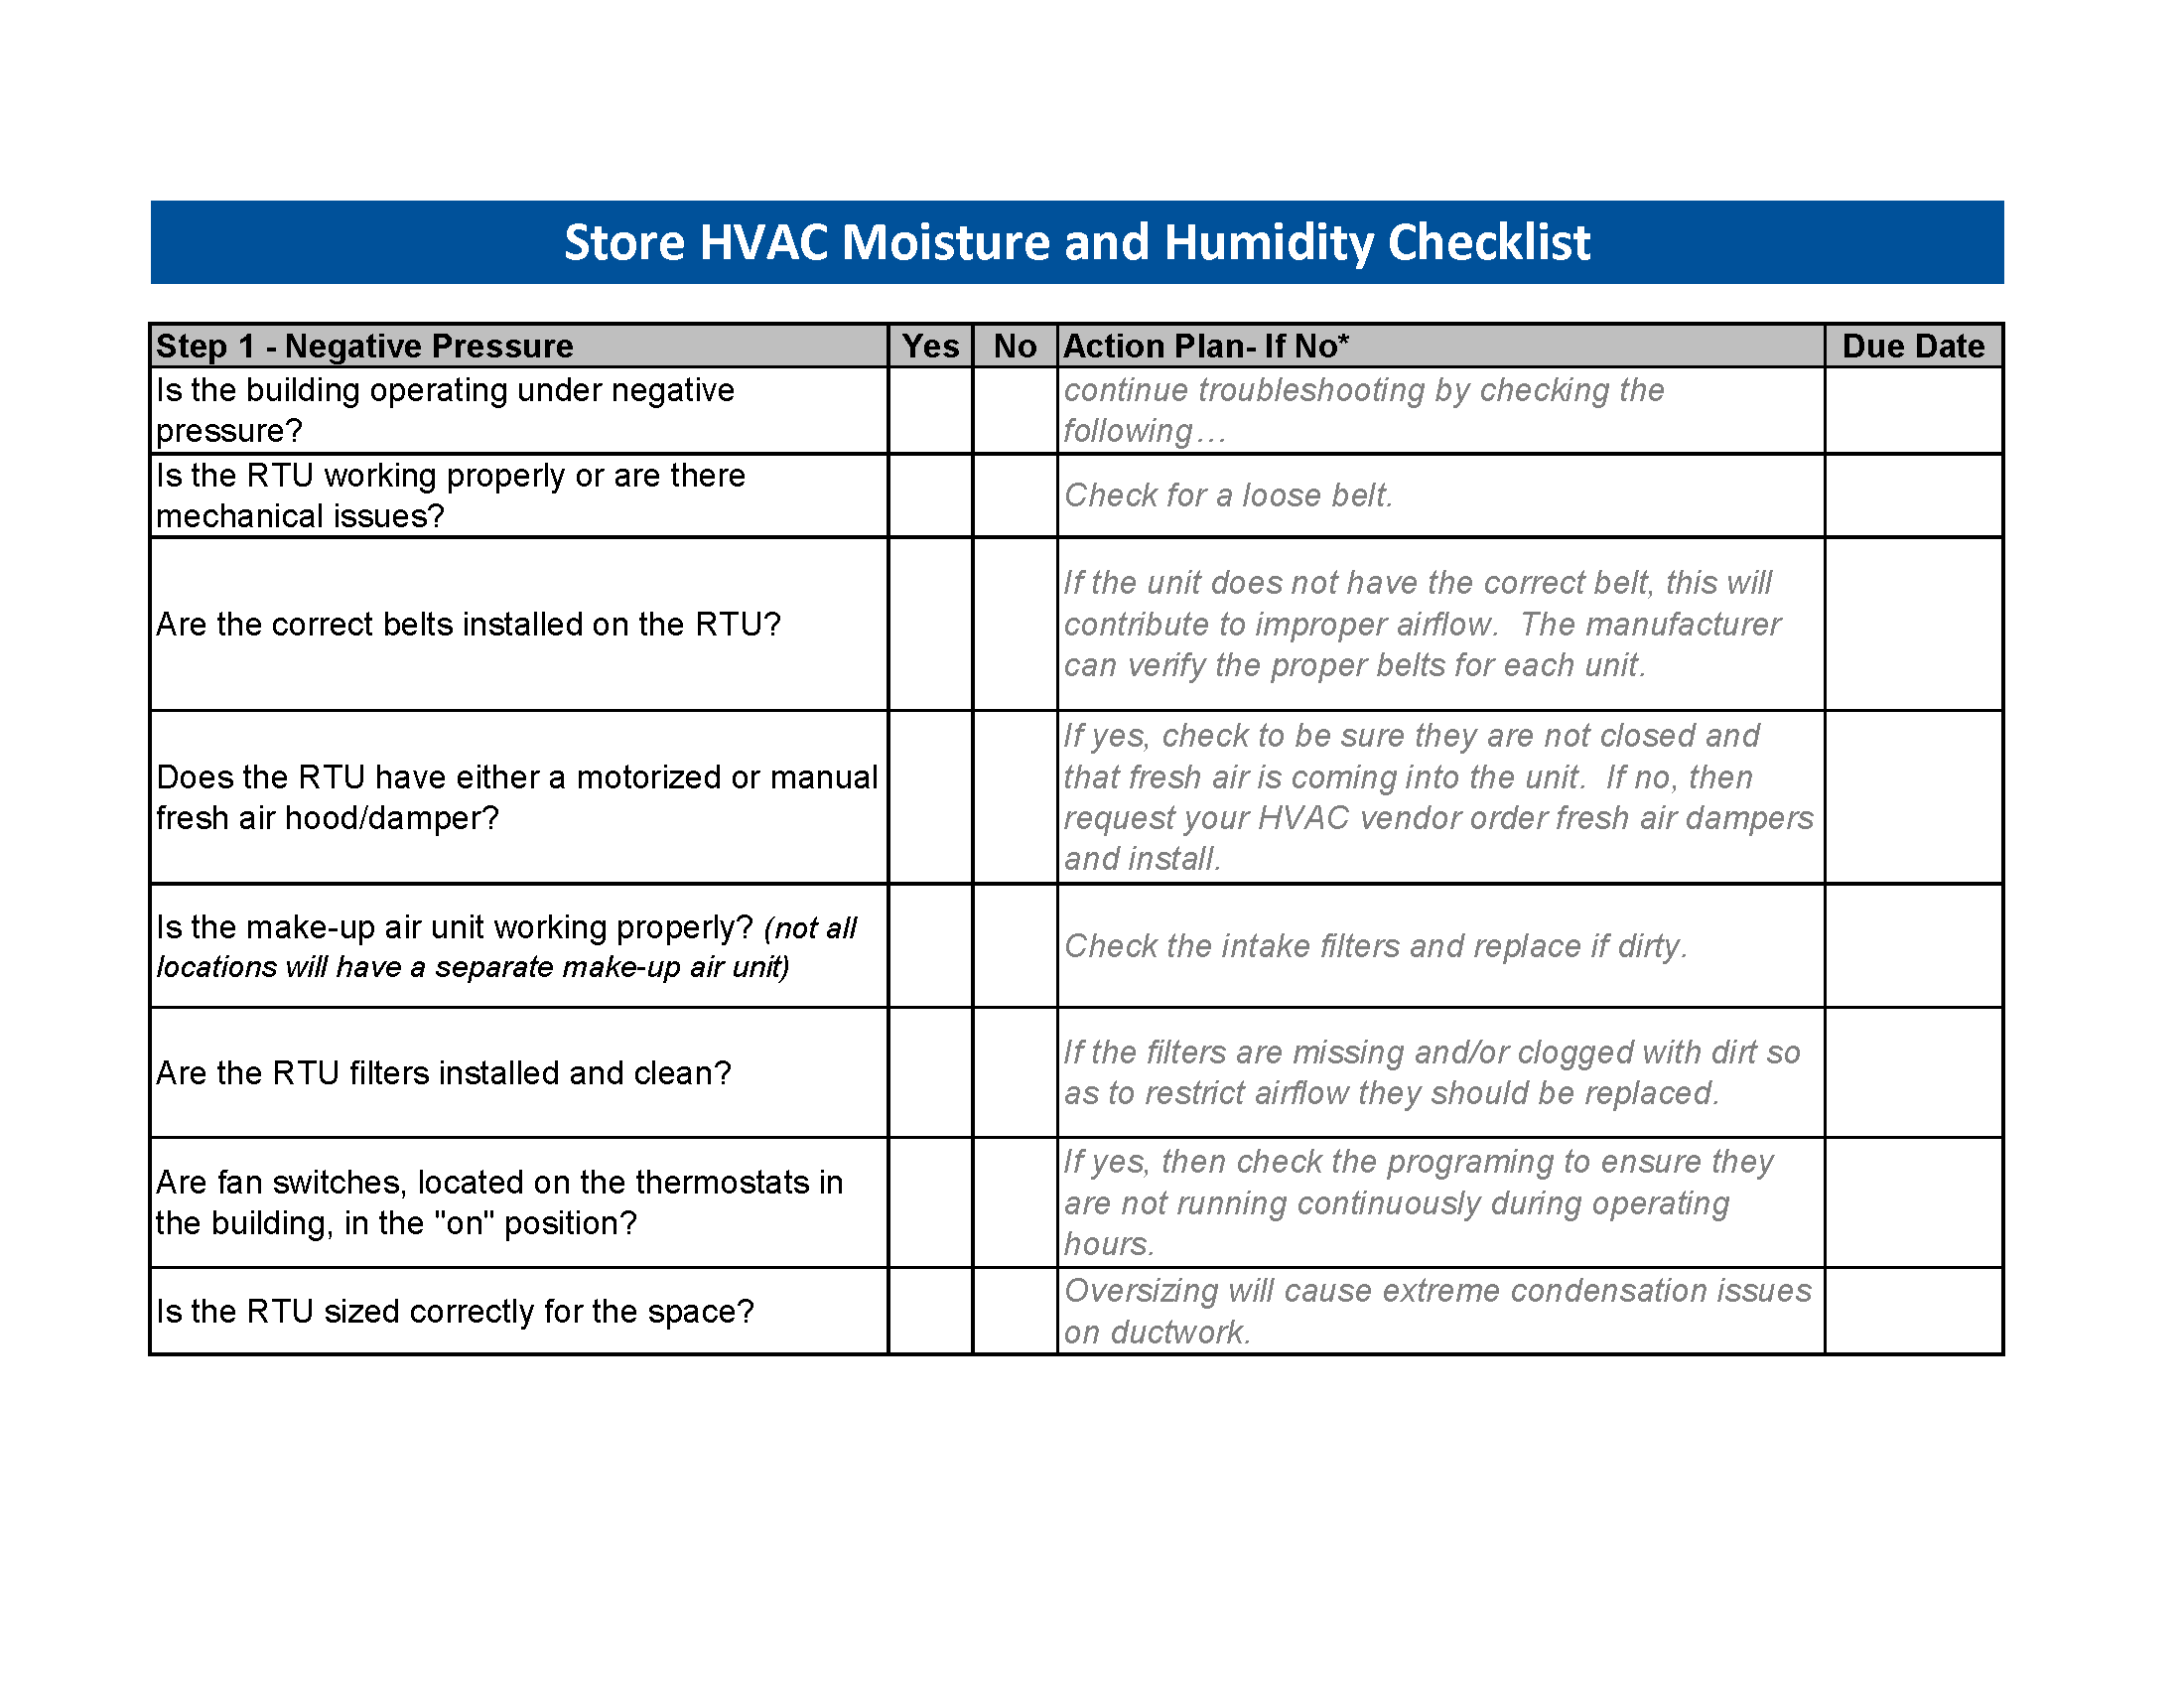 prsm s moisture and humidity checklist helps retailers prevent